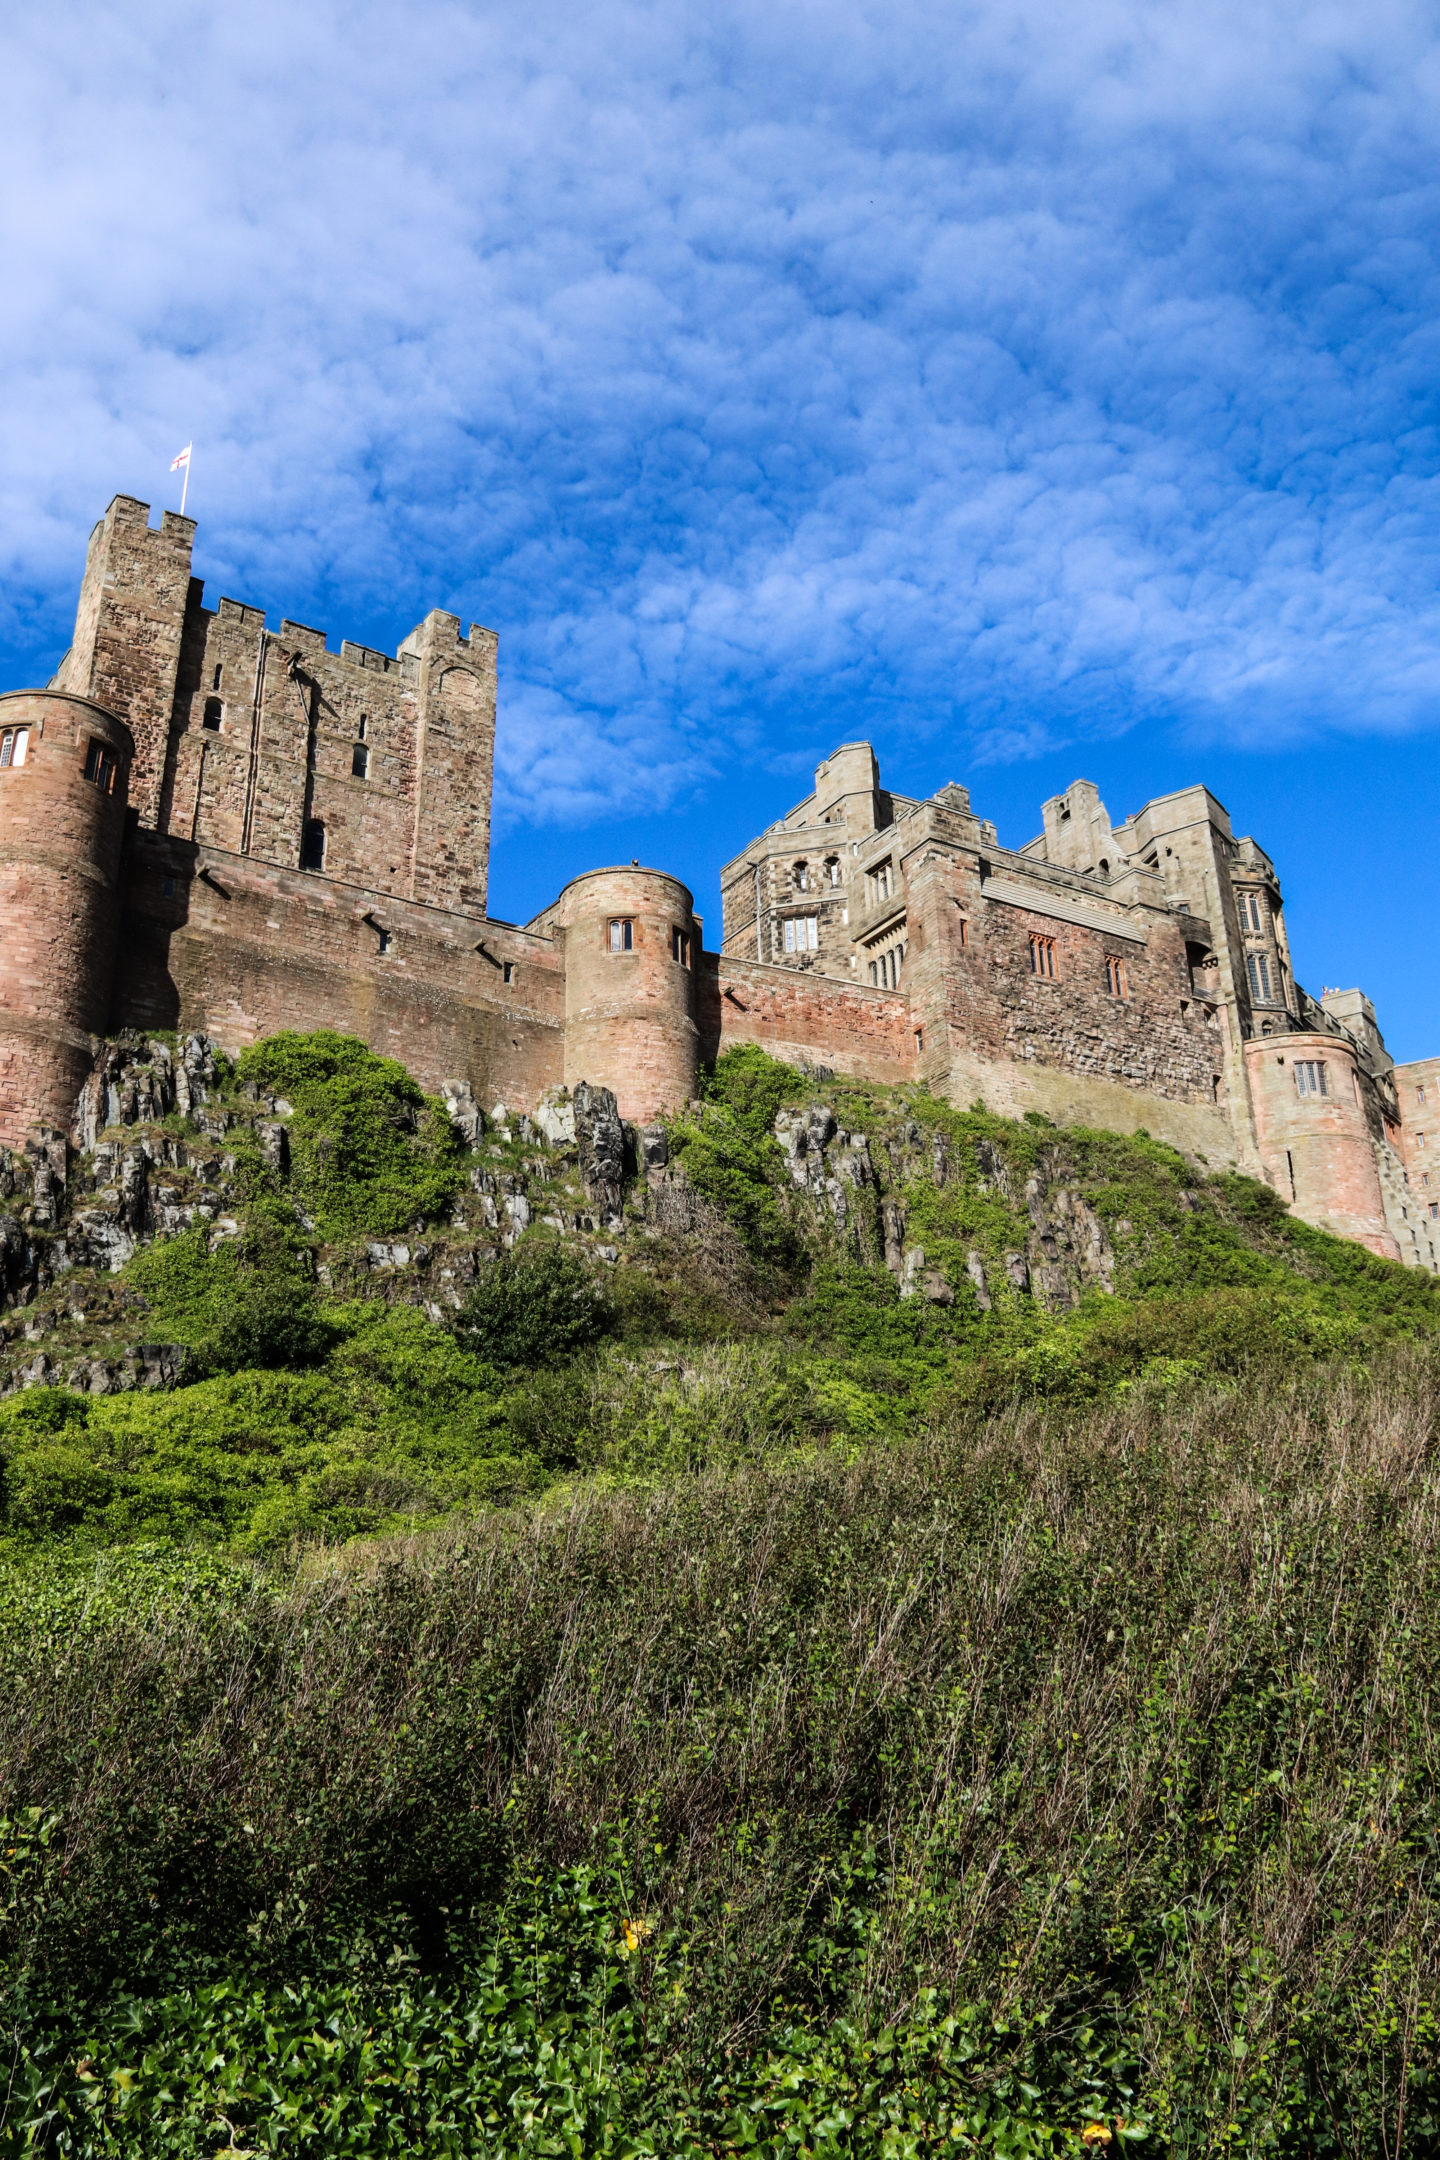 A view of Bamburgh Castle from below.